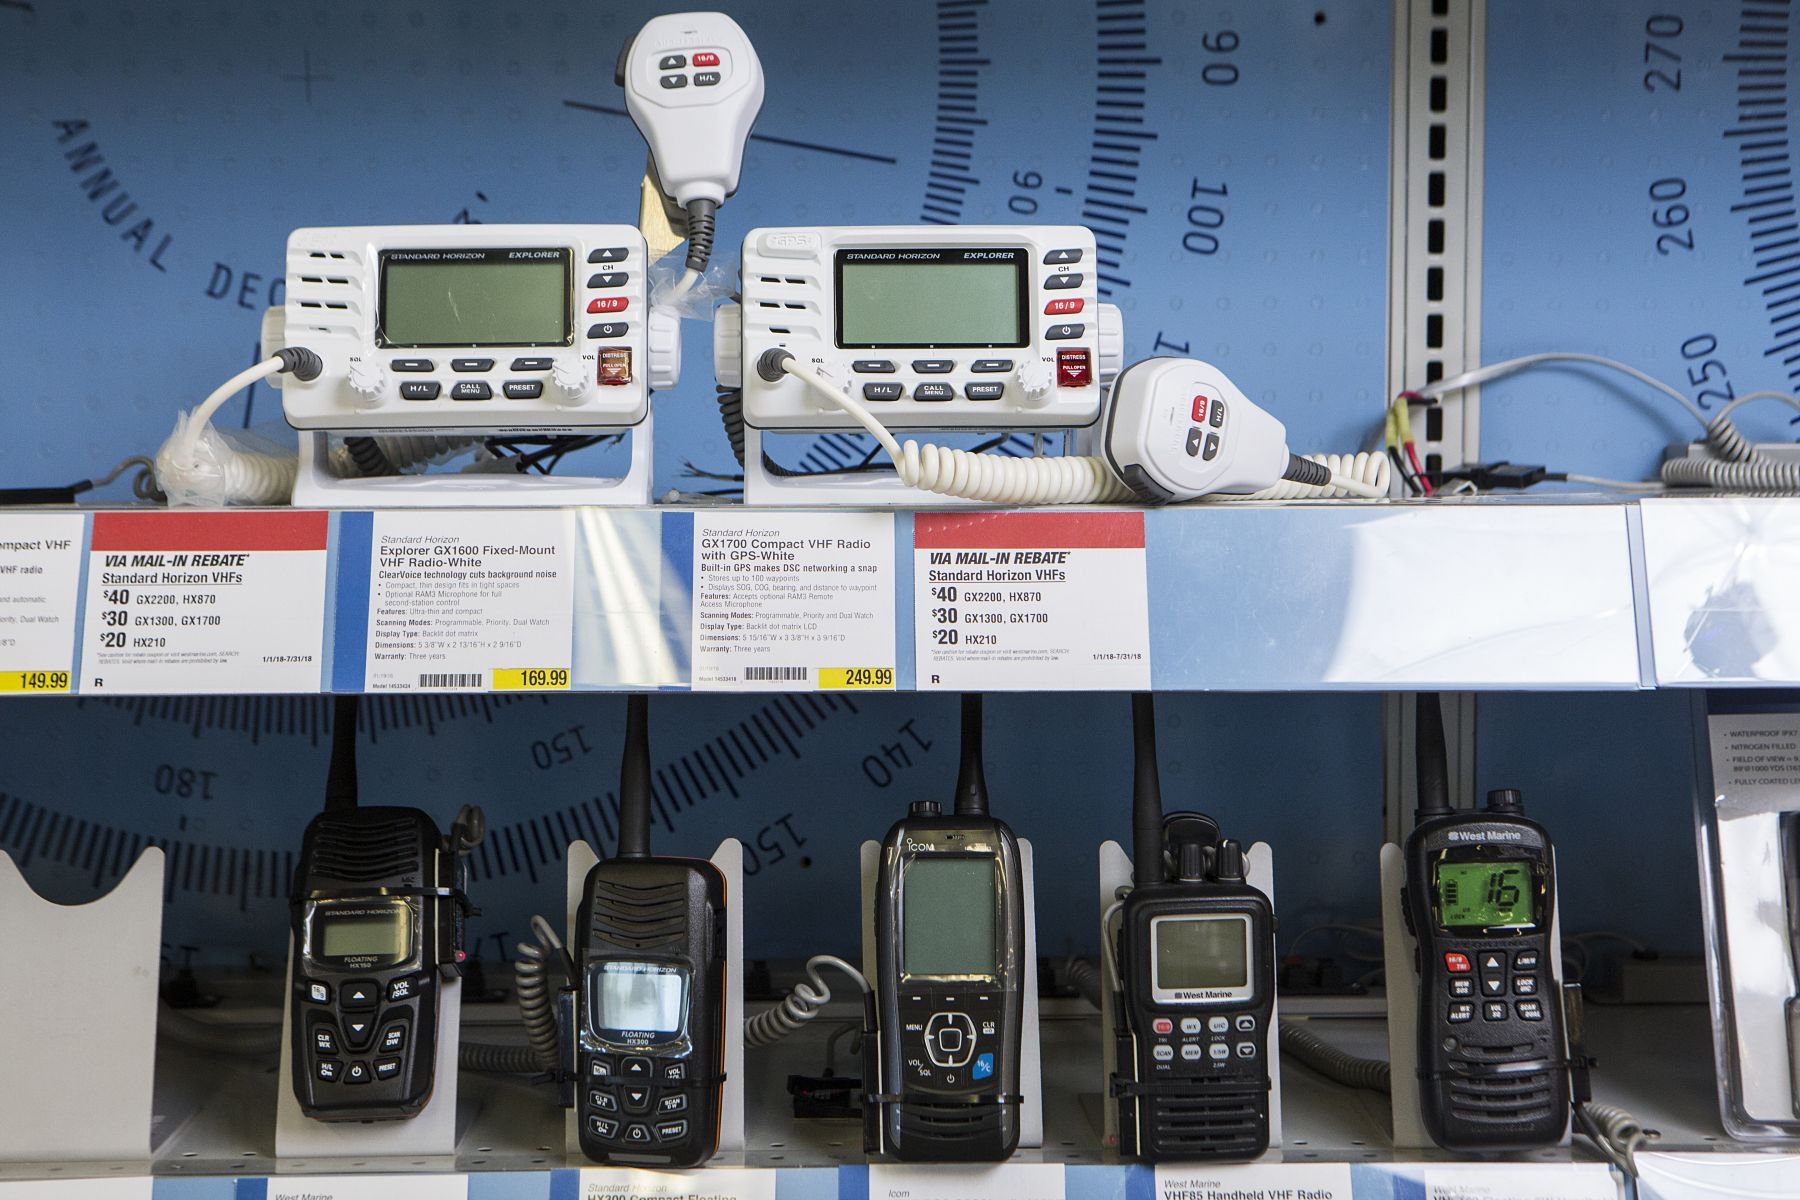 VHF and handheld VHF radios on display at a retail outlet.